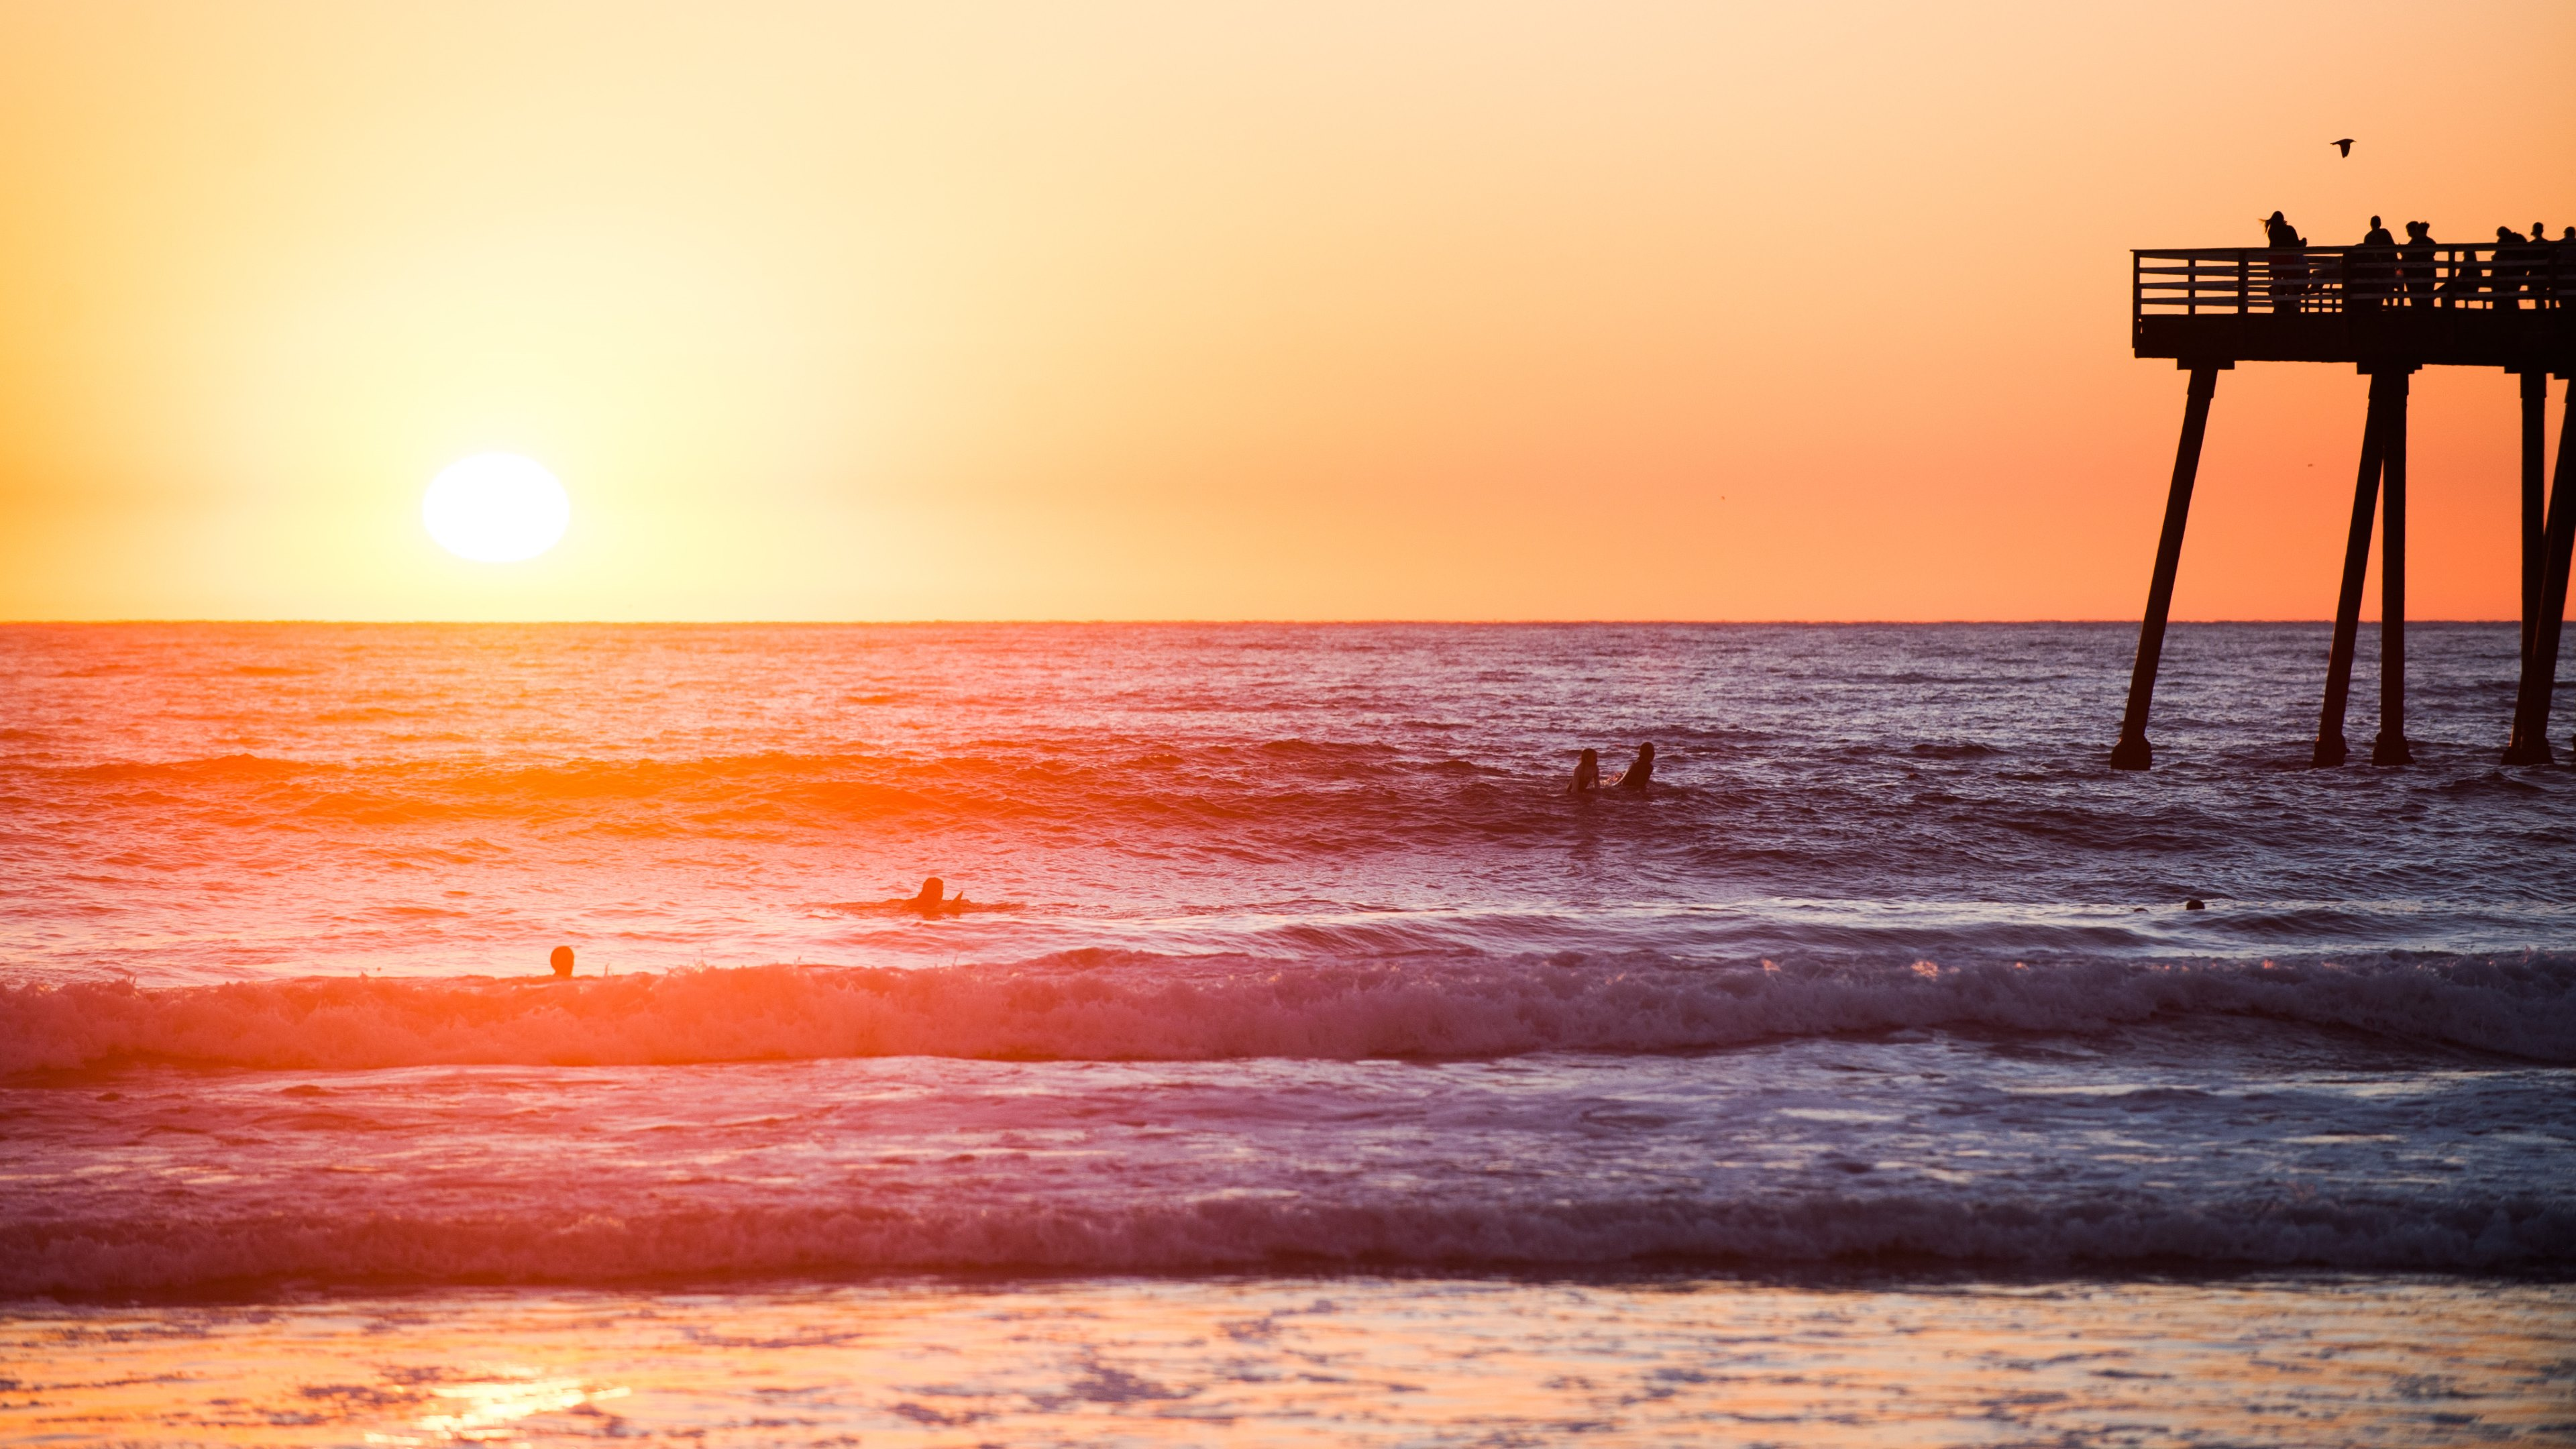 Days of summer, sea, waves, pier, surfer, surfing, table, sunset, heat, water